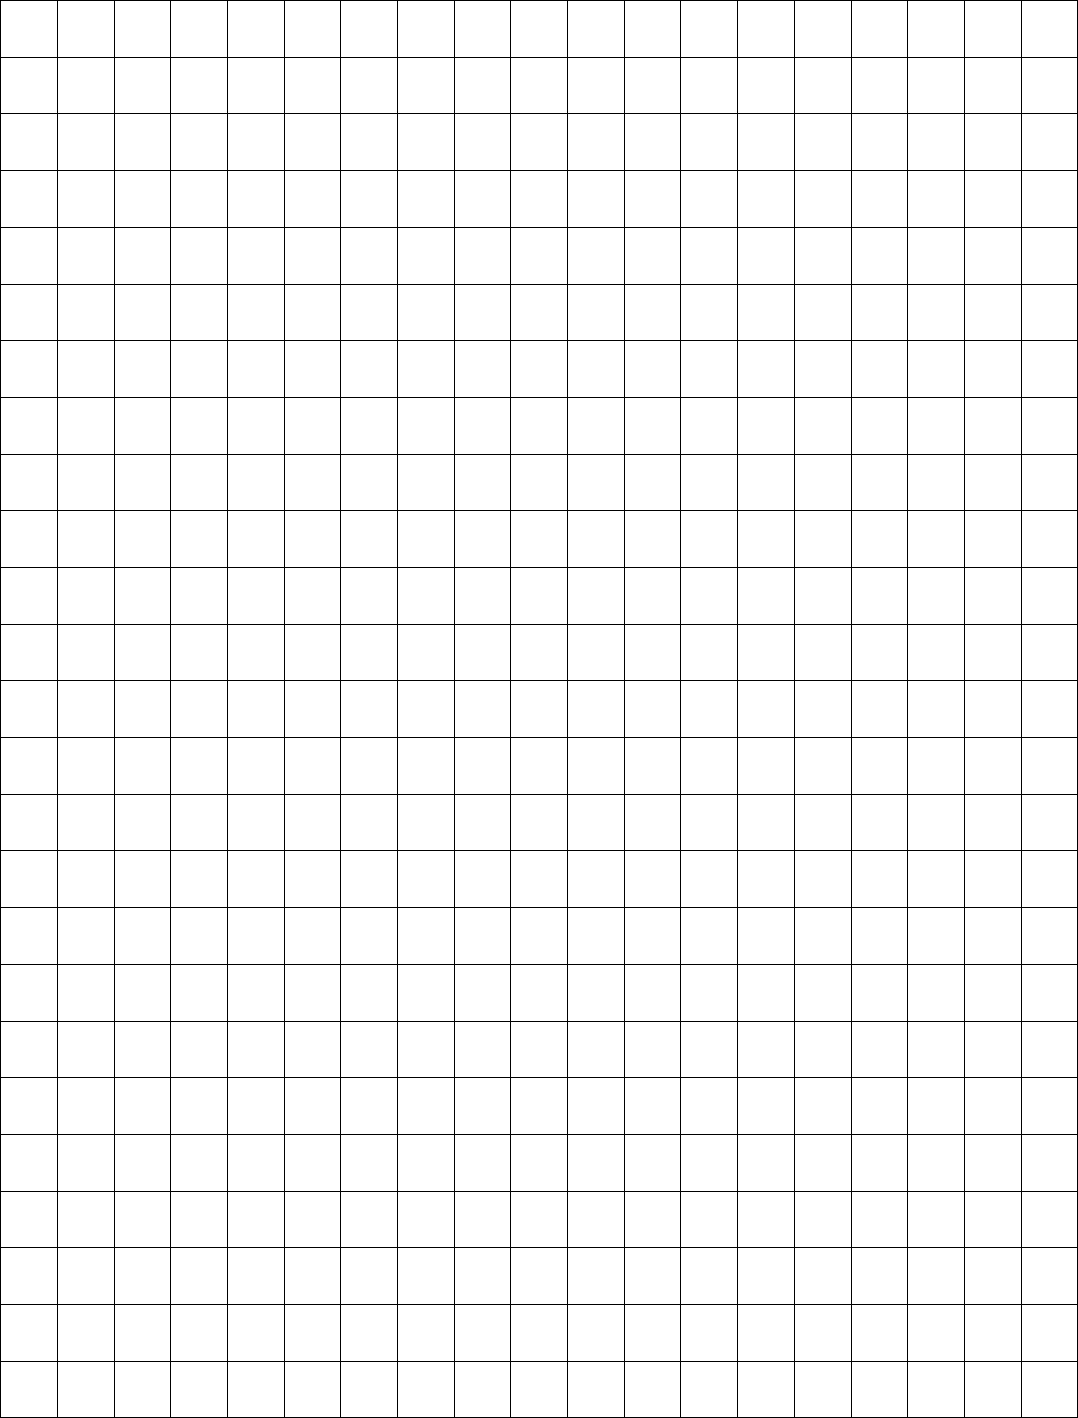 Free Graph Paper Templates Yun56co Bg1 2700 Free Graph Paper Templates Graph  Paper Word Document Graph Paper Word Document  Download Graph Paper For Word